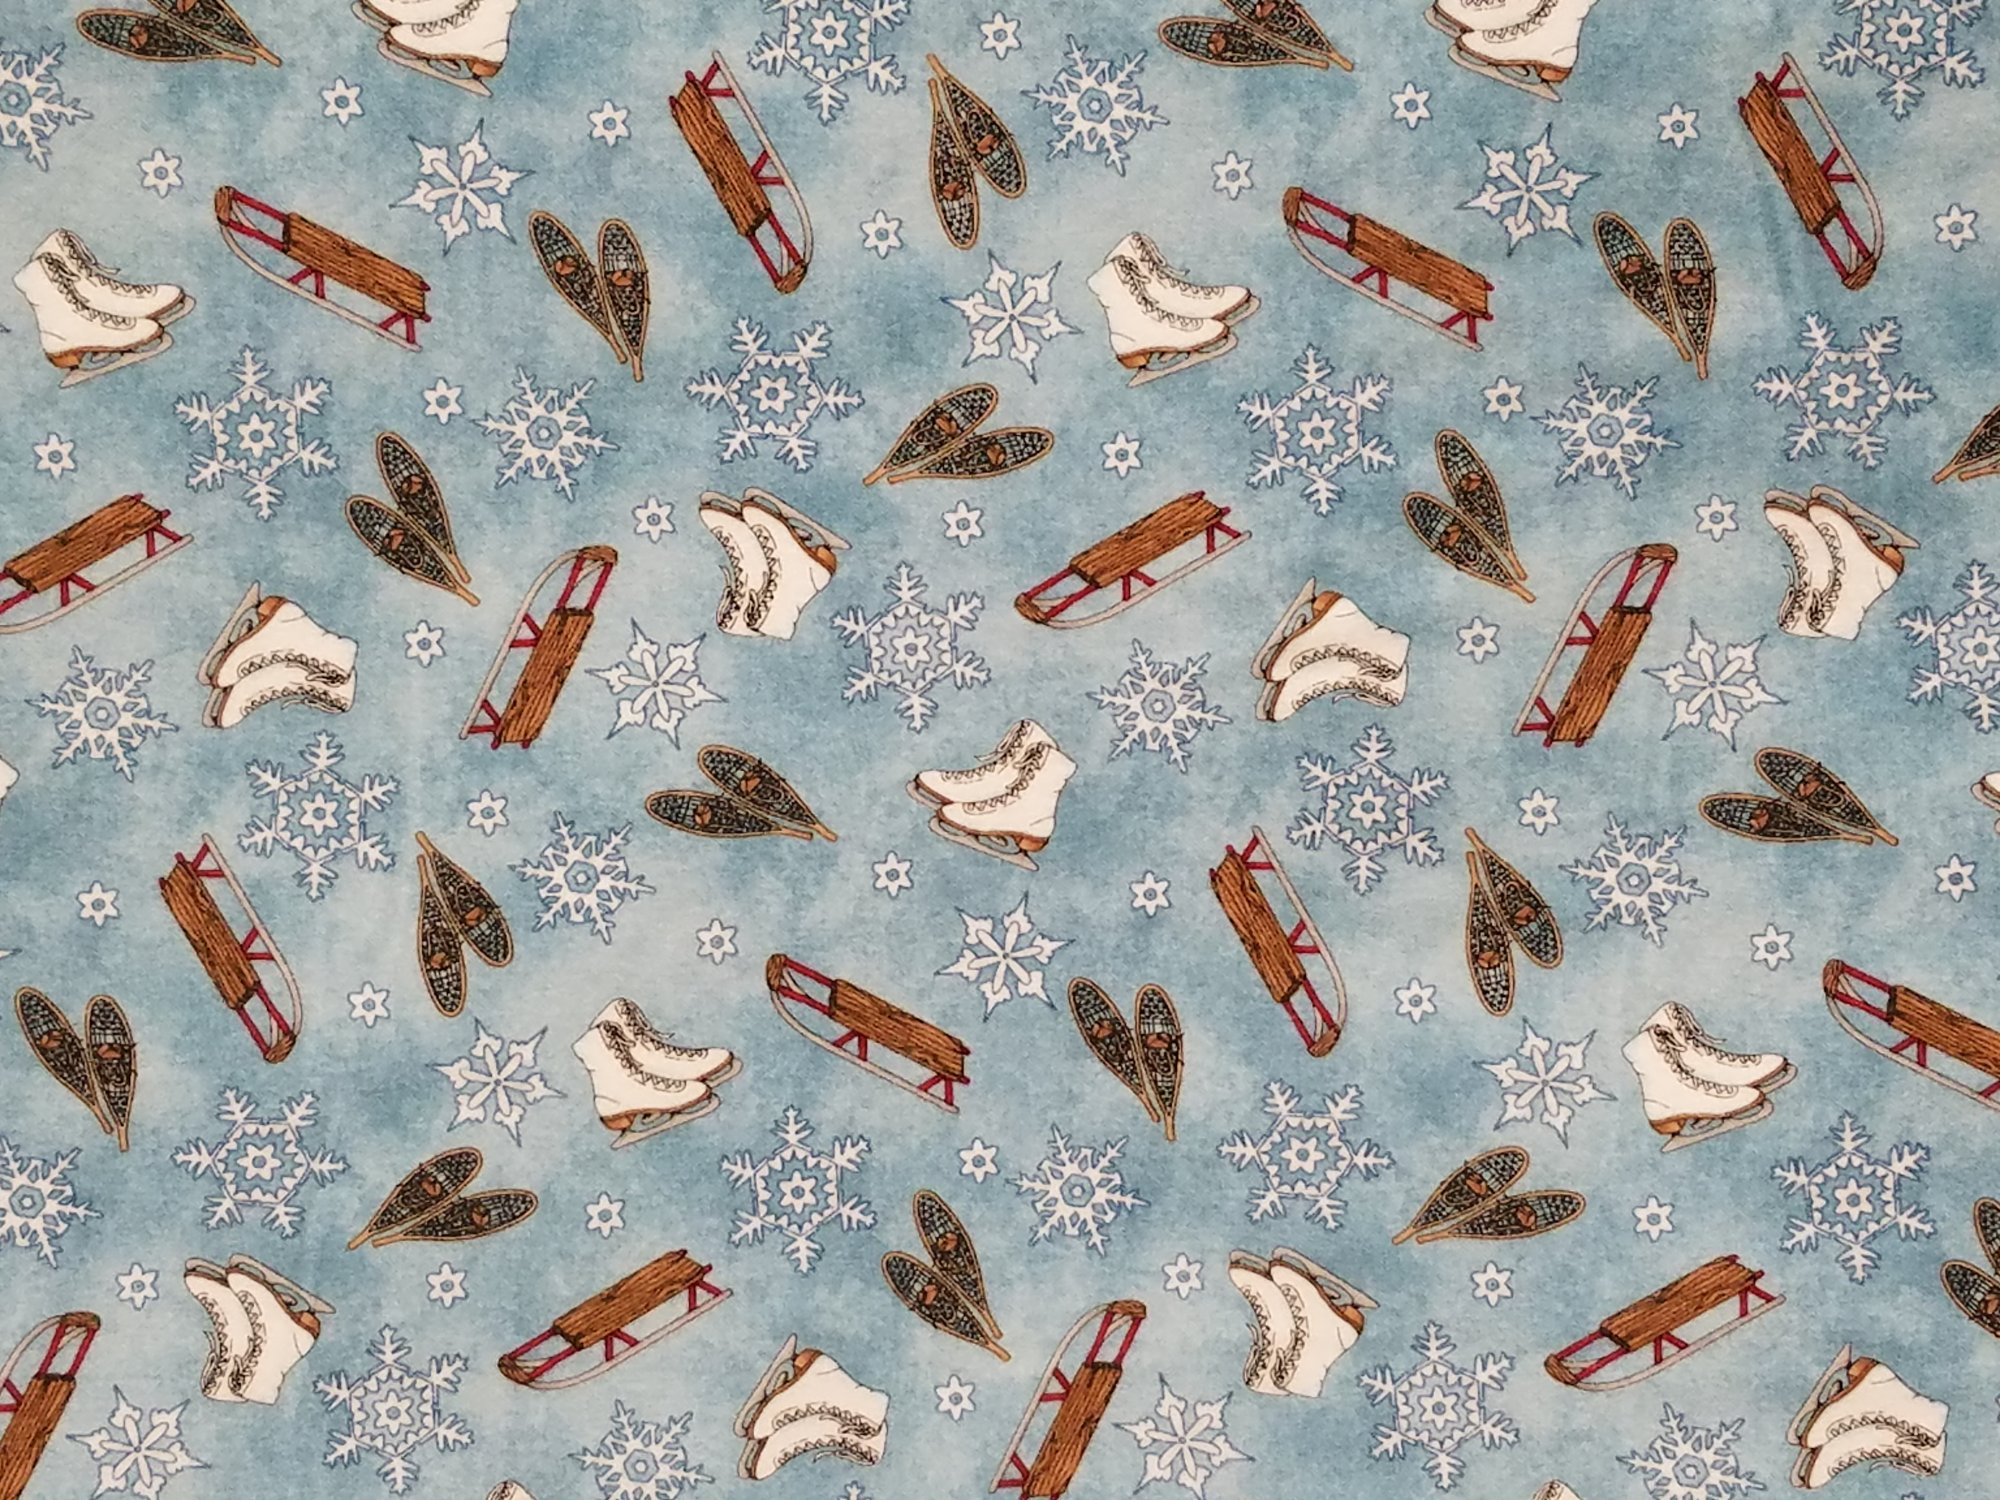 Frolic in the Snow Flannel - Sports Toss - 50% Off!